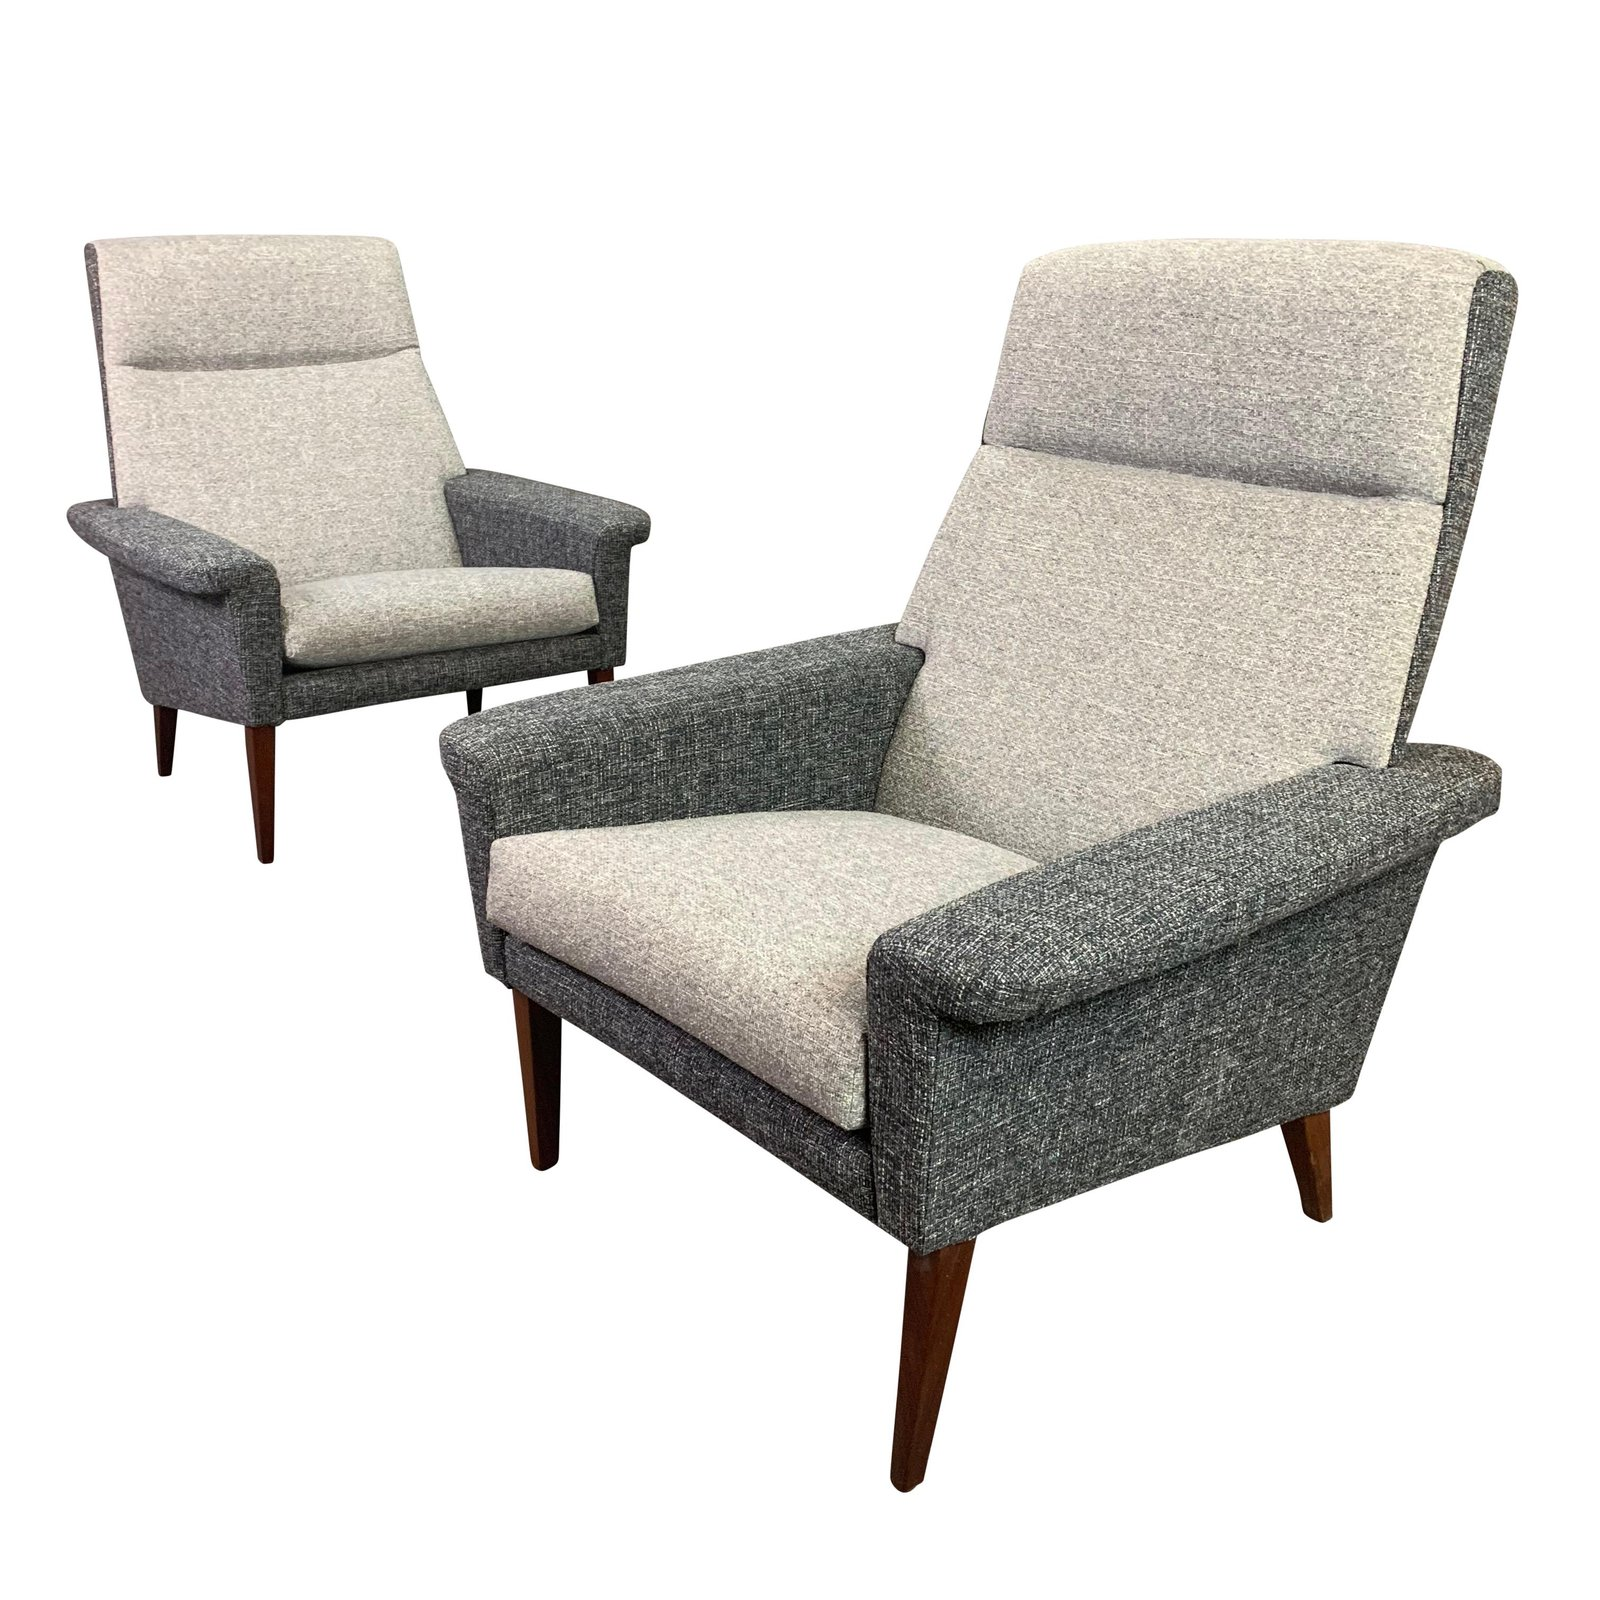 Danish Modern Lounge Chair Pair Of Vintage Danish Mid Century Modern Lounge Chairs